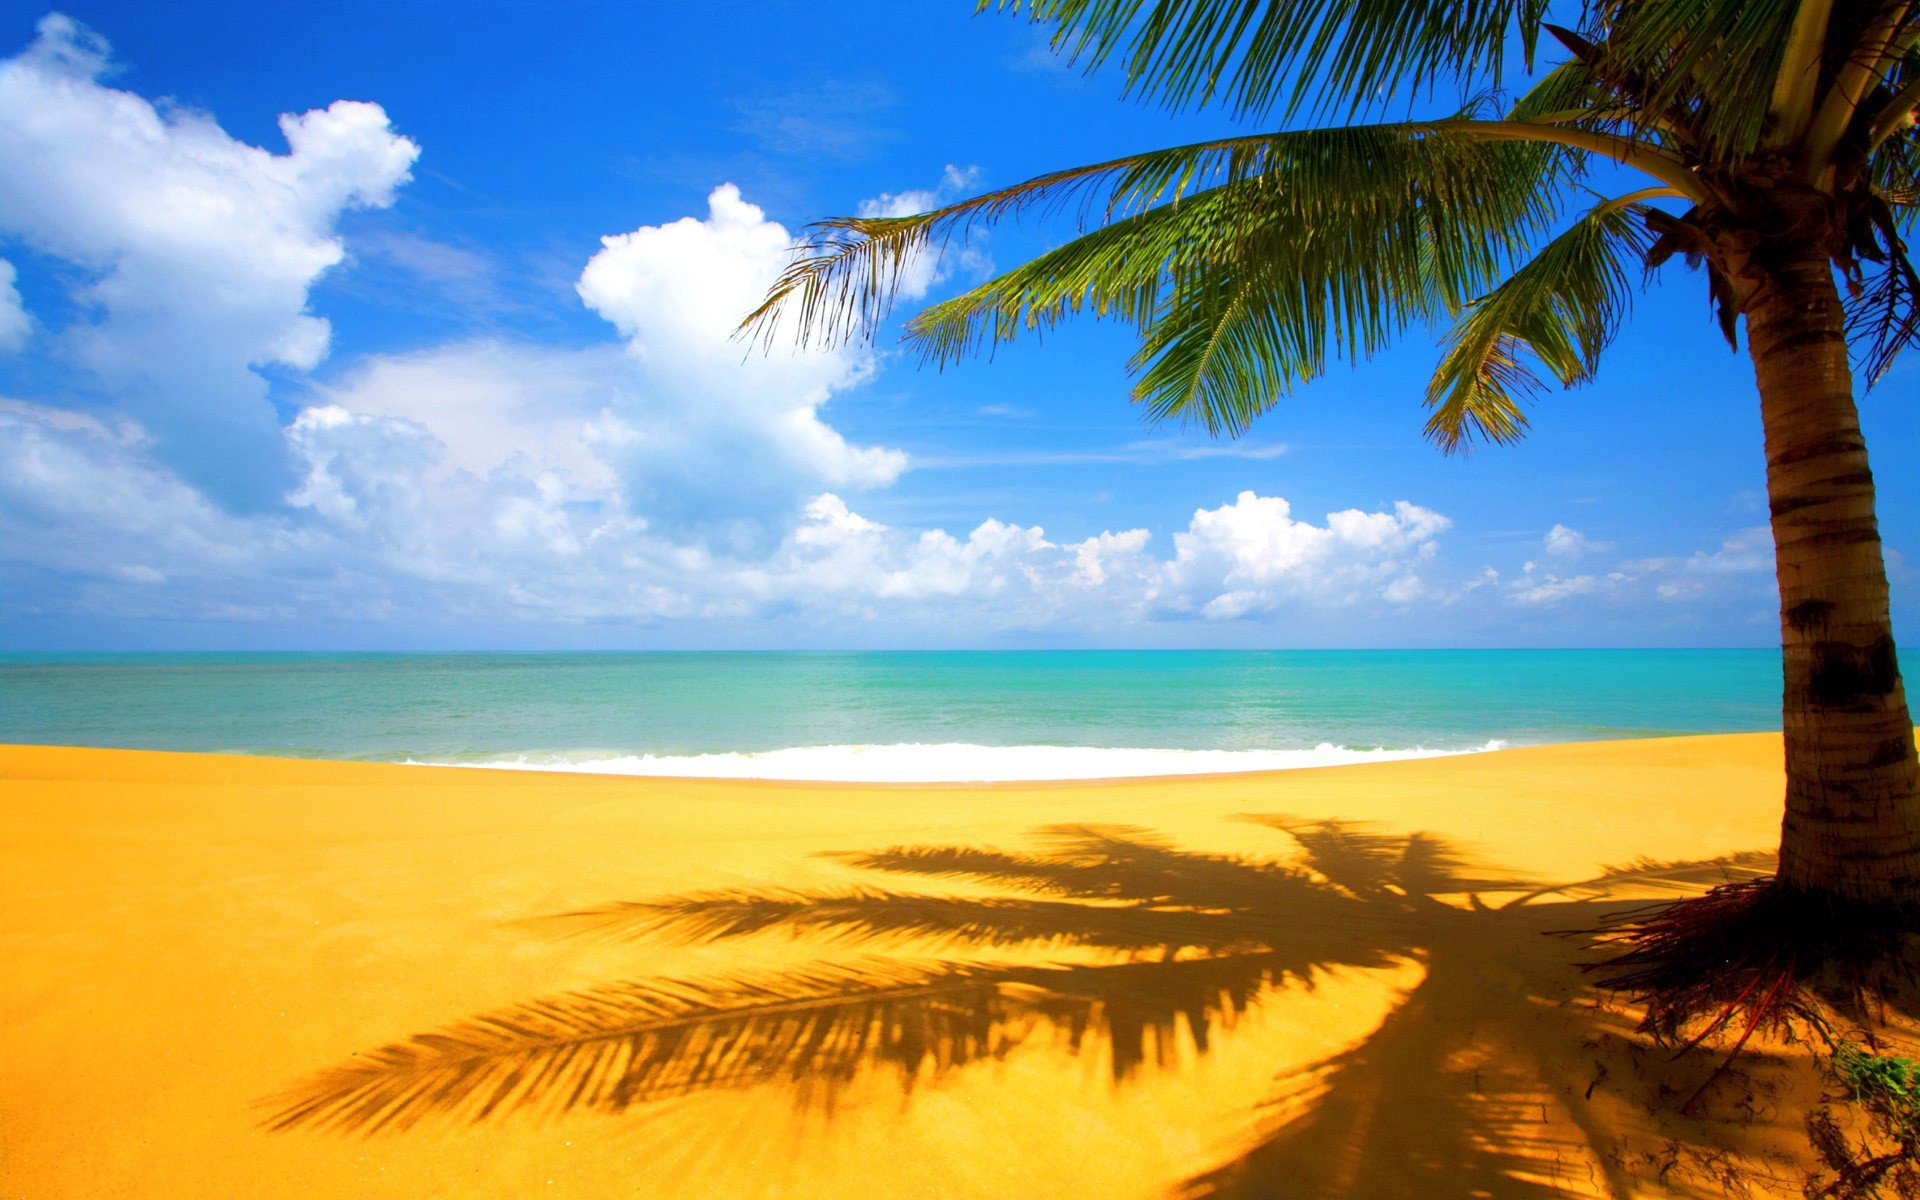 Beach Desktop Wallpaper Widescreen: Hd Beach Desktop Backgrounds